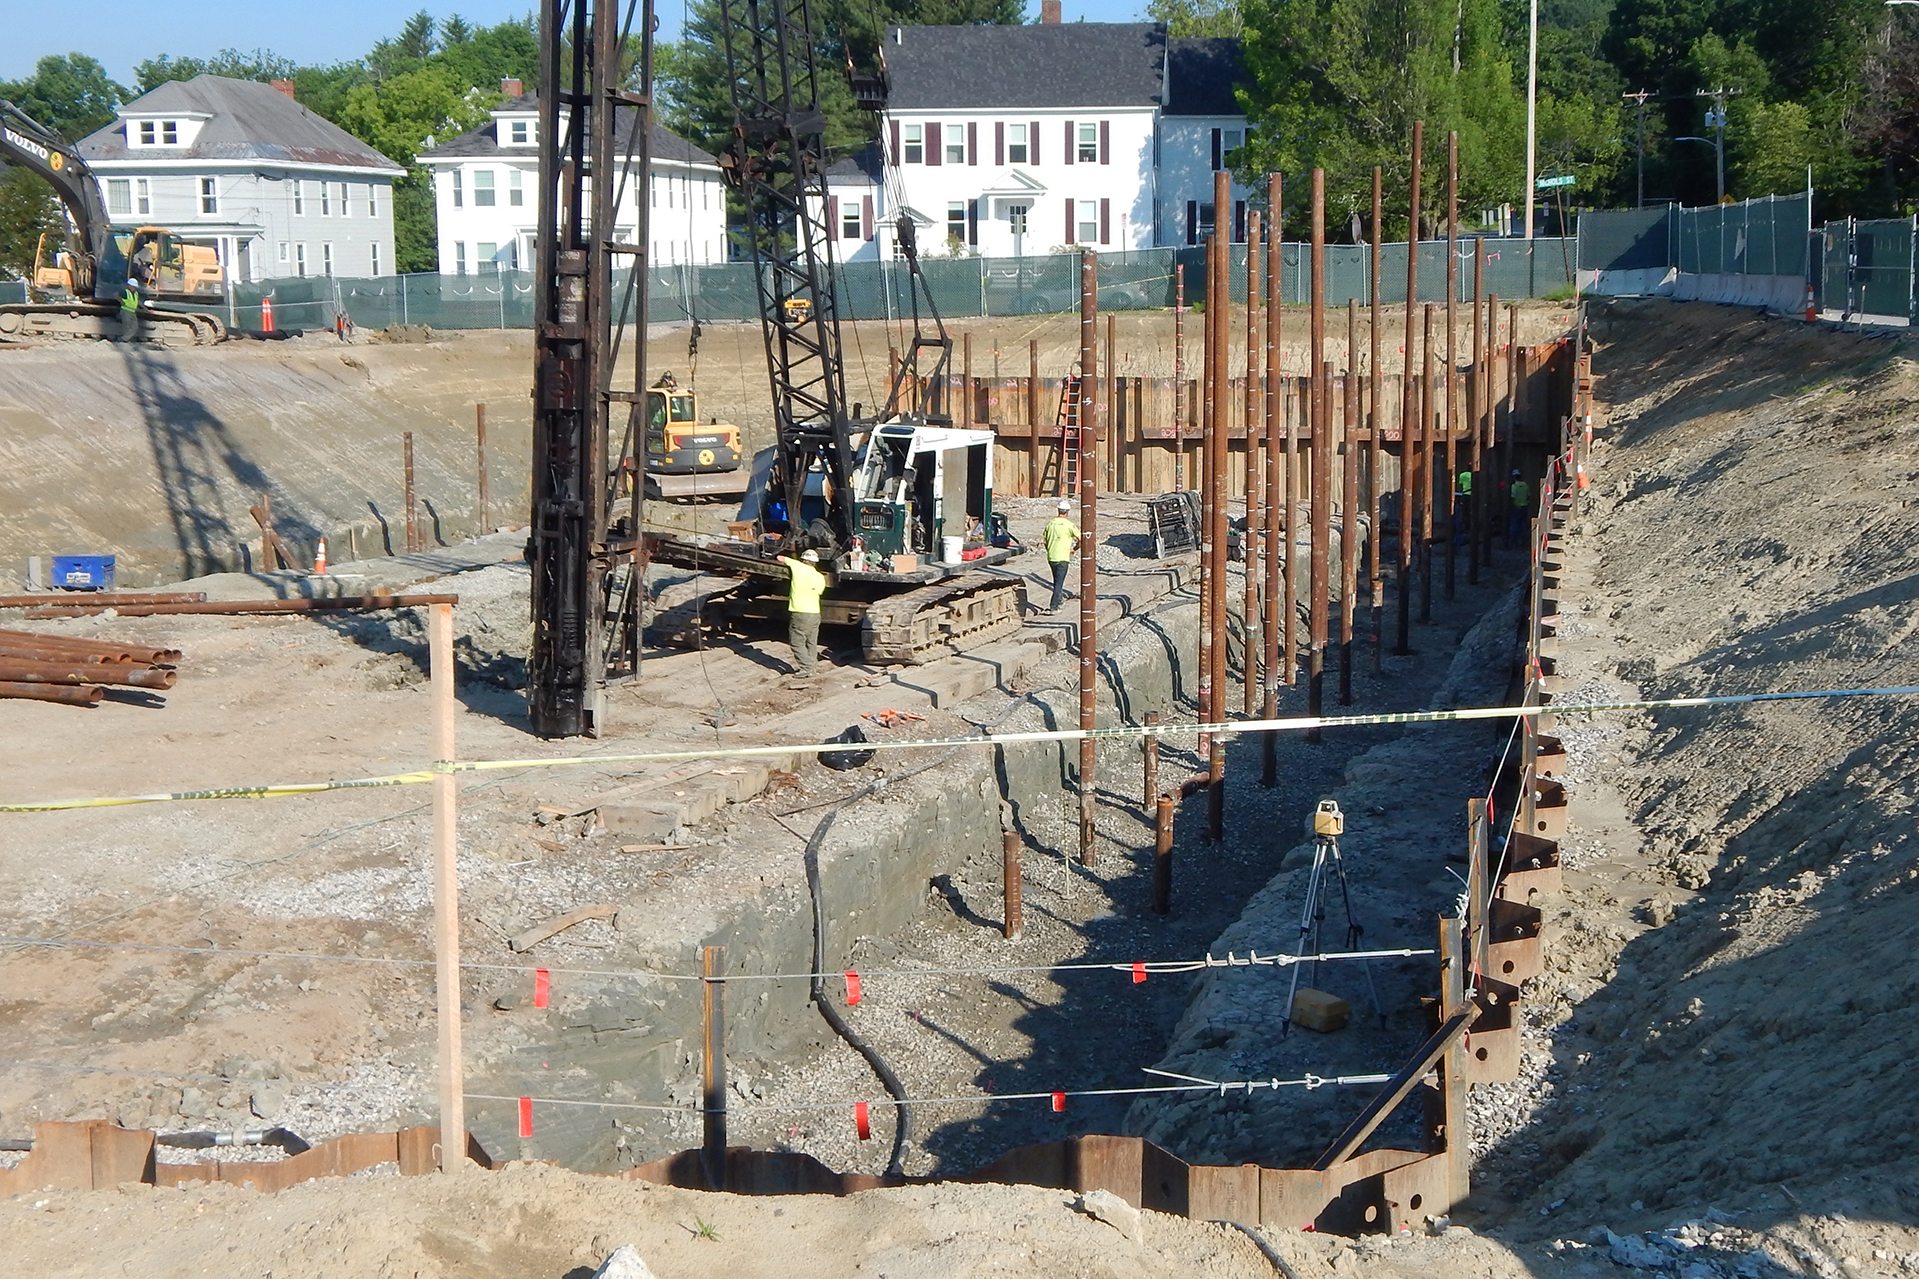 Pipe up: Spliced pipe piles in the Bonney Science Center foundation hole on July 3, 2019. (Doug Hubley/Bates College)